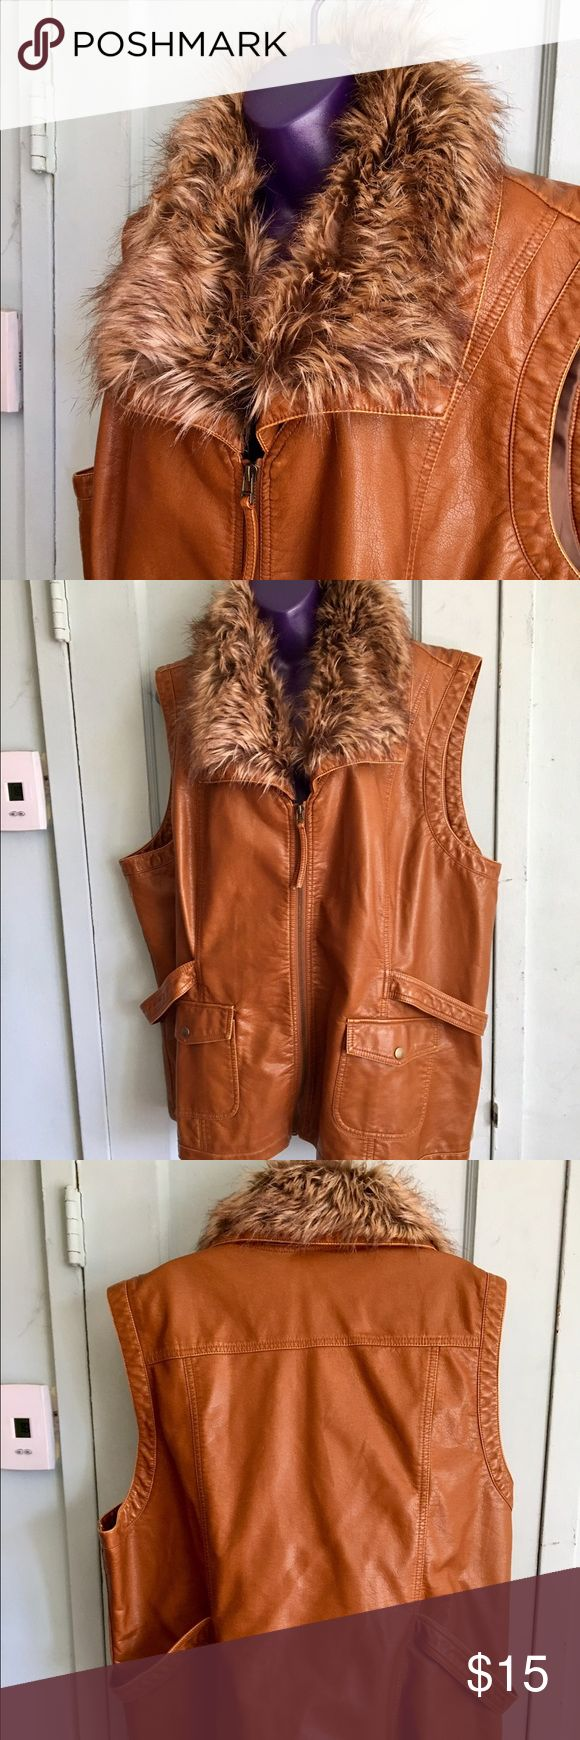 Brown faux leather vest with fake fur collar 3X Great vest to wear over a sweater or a jacket.  Pockets and buckles are functional. Dress Barn size 3X. Missing 2 buttons to attach the collar but it doesn't affect the look or function Dress Barn Jackets & Coats Vests